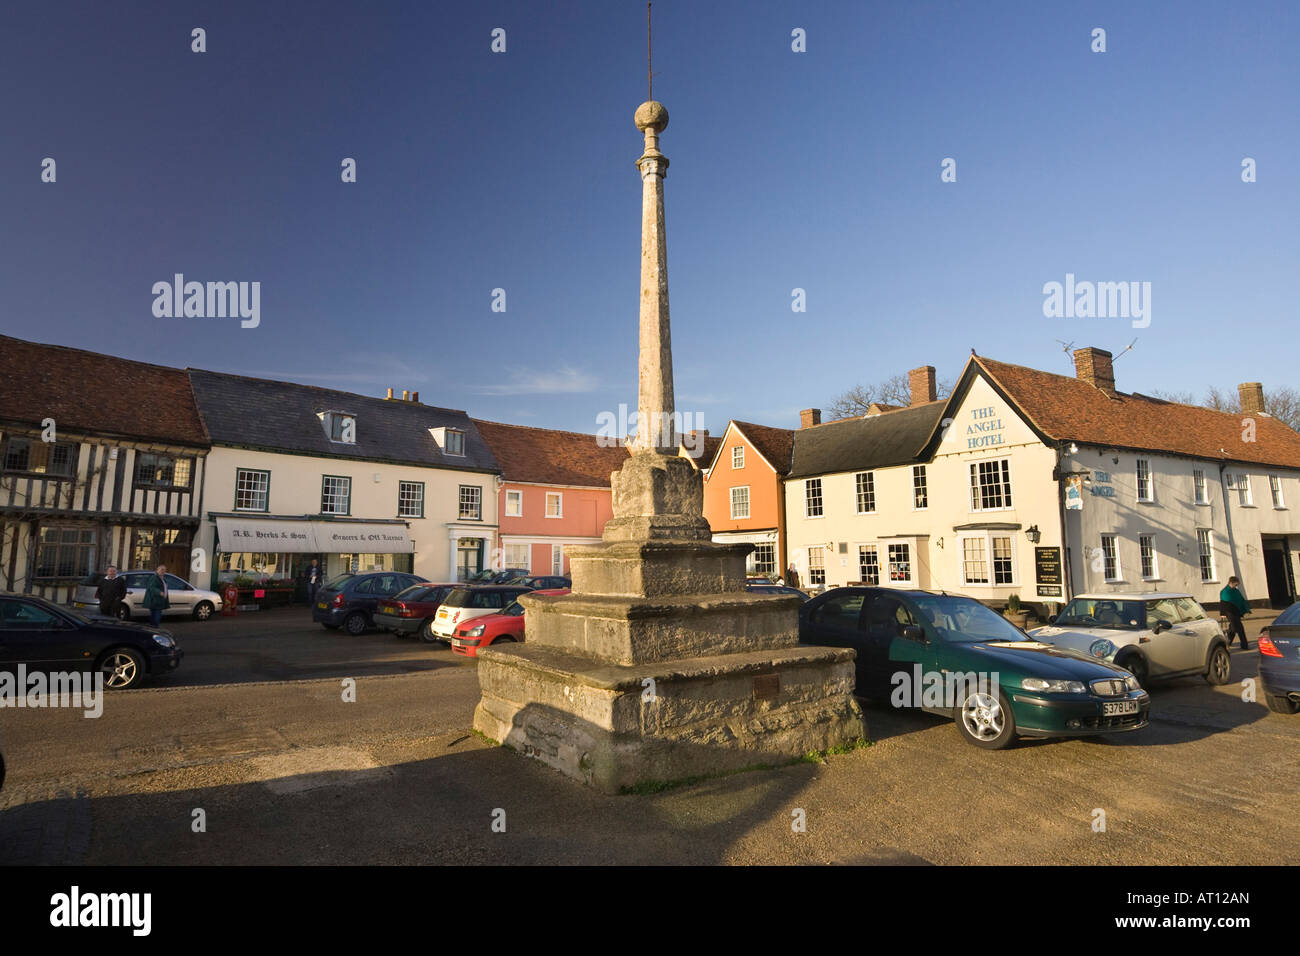 The Market Place in Lavenham, Suffolk, UK, 2008 Stock Photo